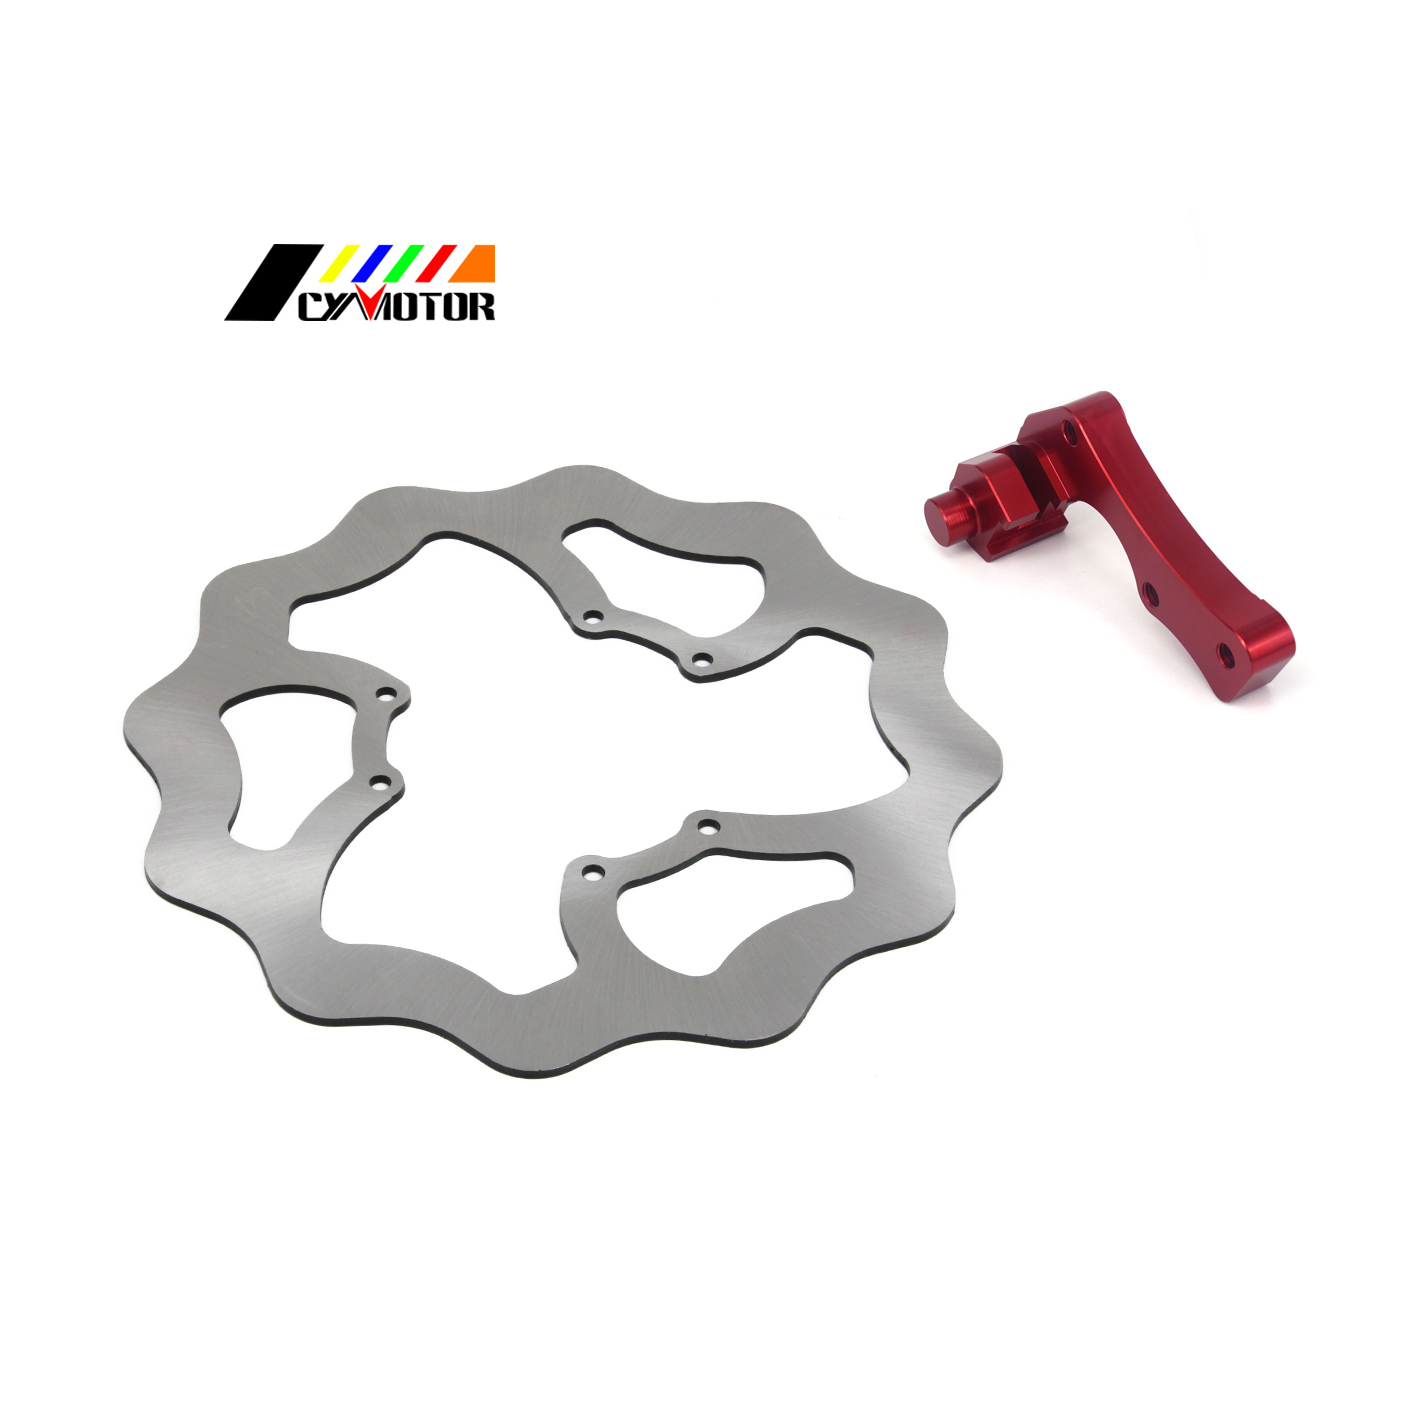 Motorcycle Steel Front Brake Disc And Adapter Bracket For HONDA CR 125 250 R E CR250F CRF250R CRF 250 450 X CRF 250 450 R